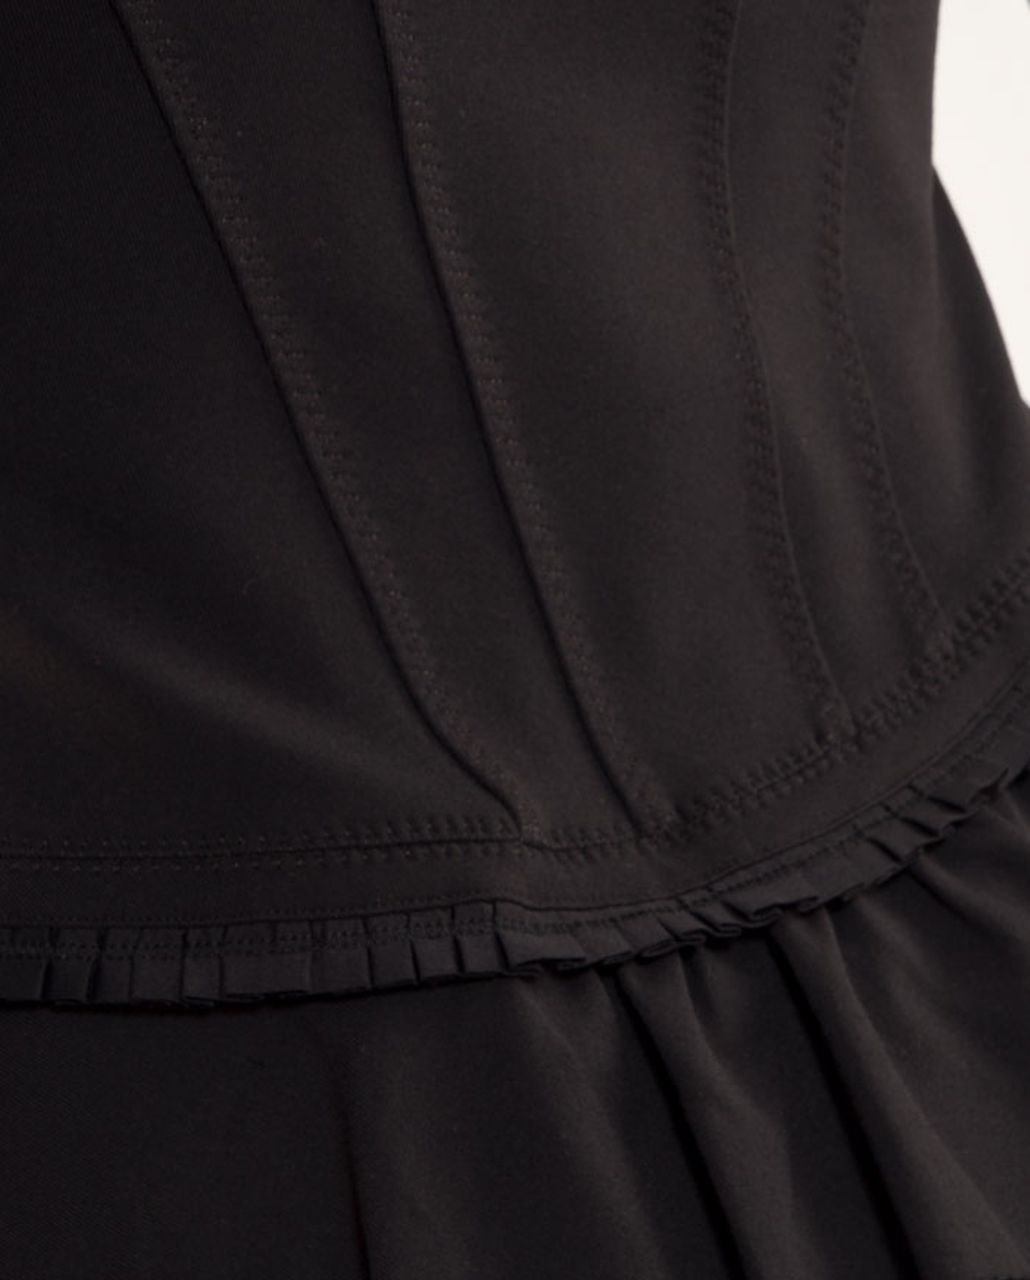 Lululemon City To Yoga Jacket - Black